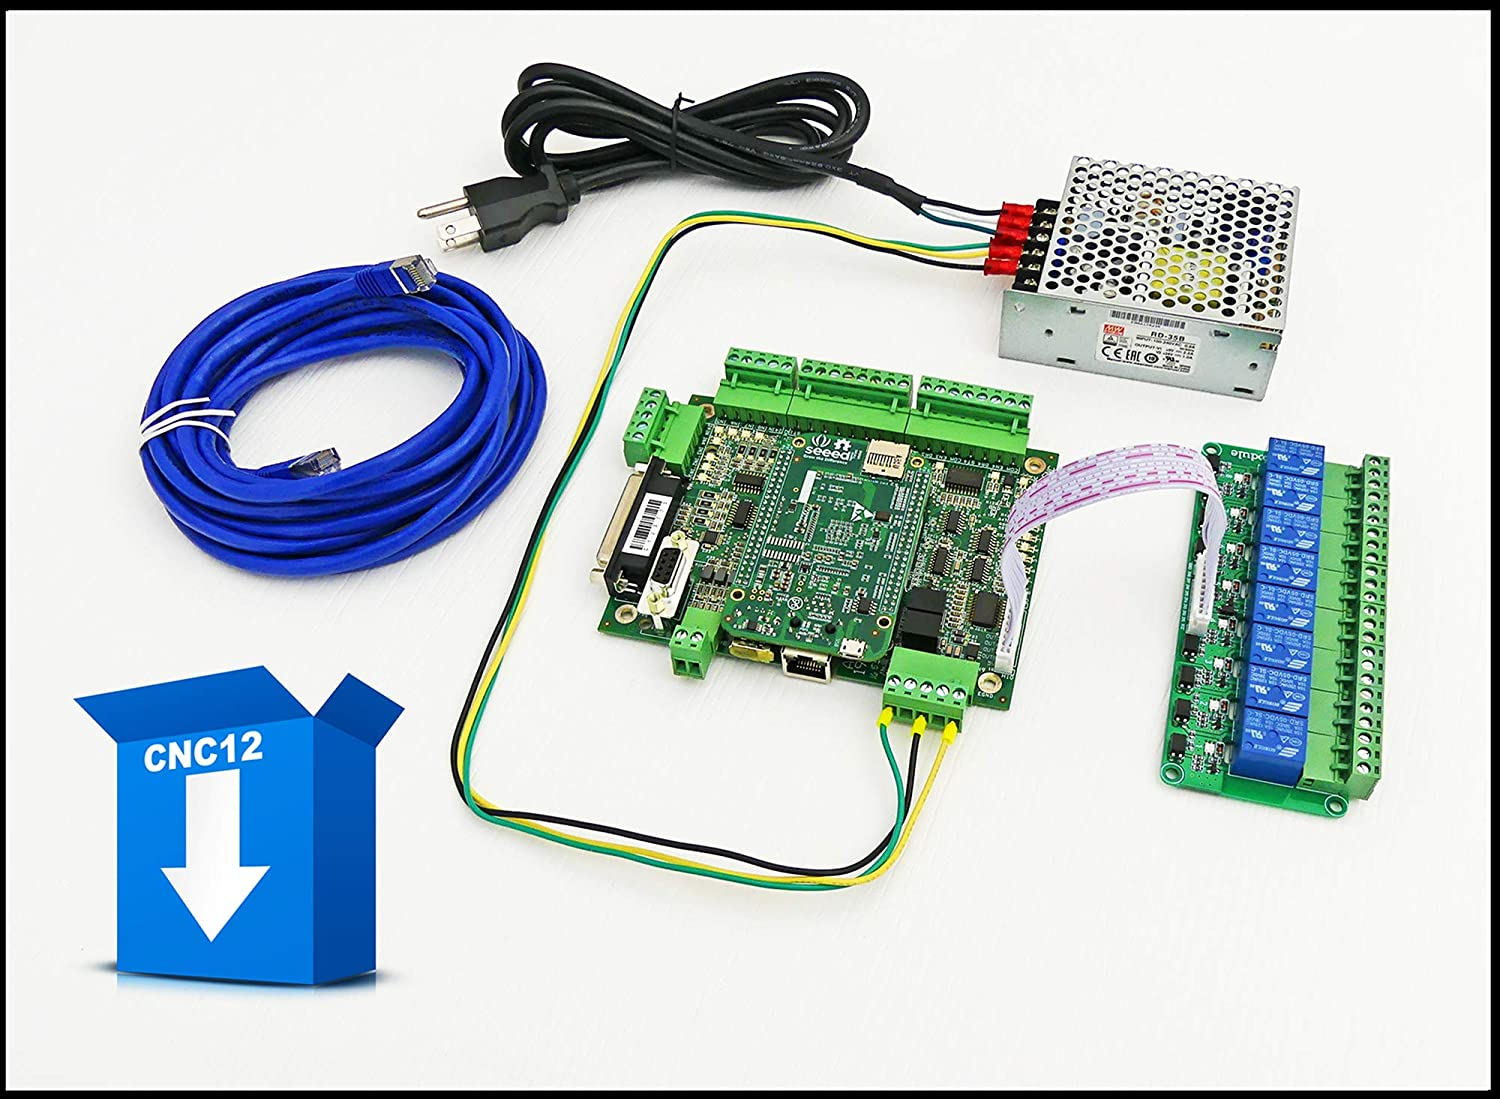 centroid 4 axis acorn diy cnc motion controller kit (rev 4) with cnc software, replaces machmotion,wincnc,mach3,emc2,kcam4,smooth stepper  ethernet smoothstepper g540 wiring diagrams #12